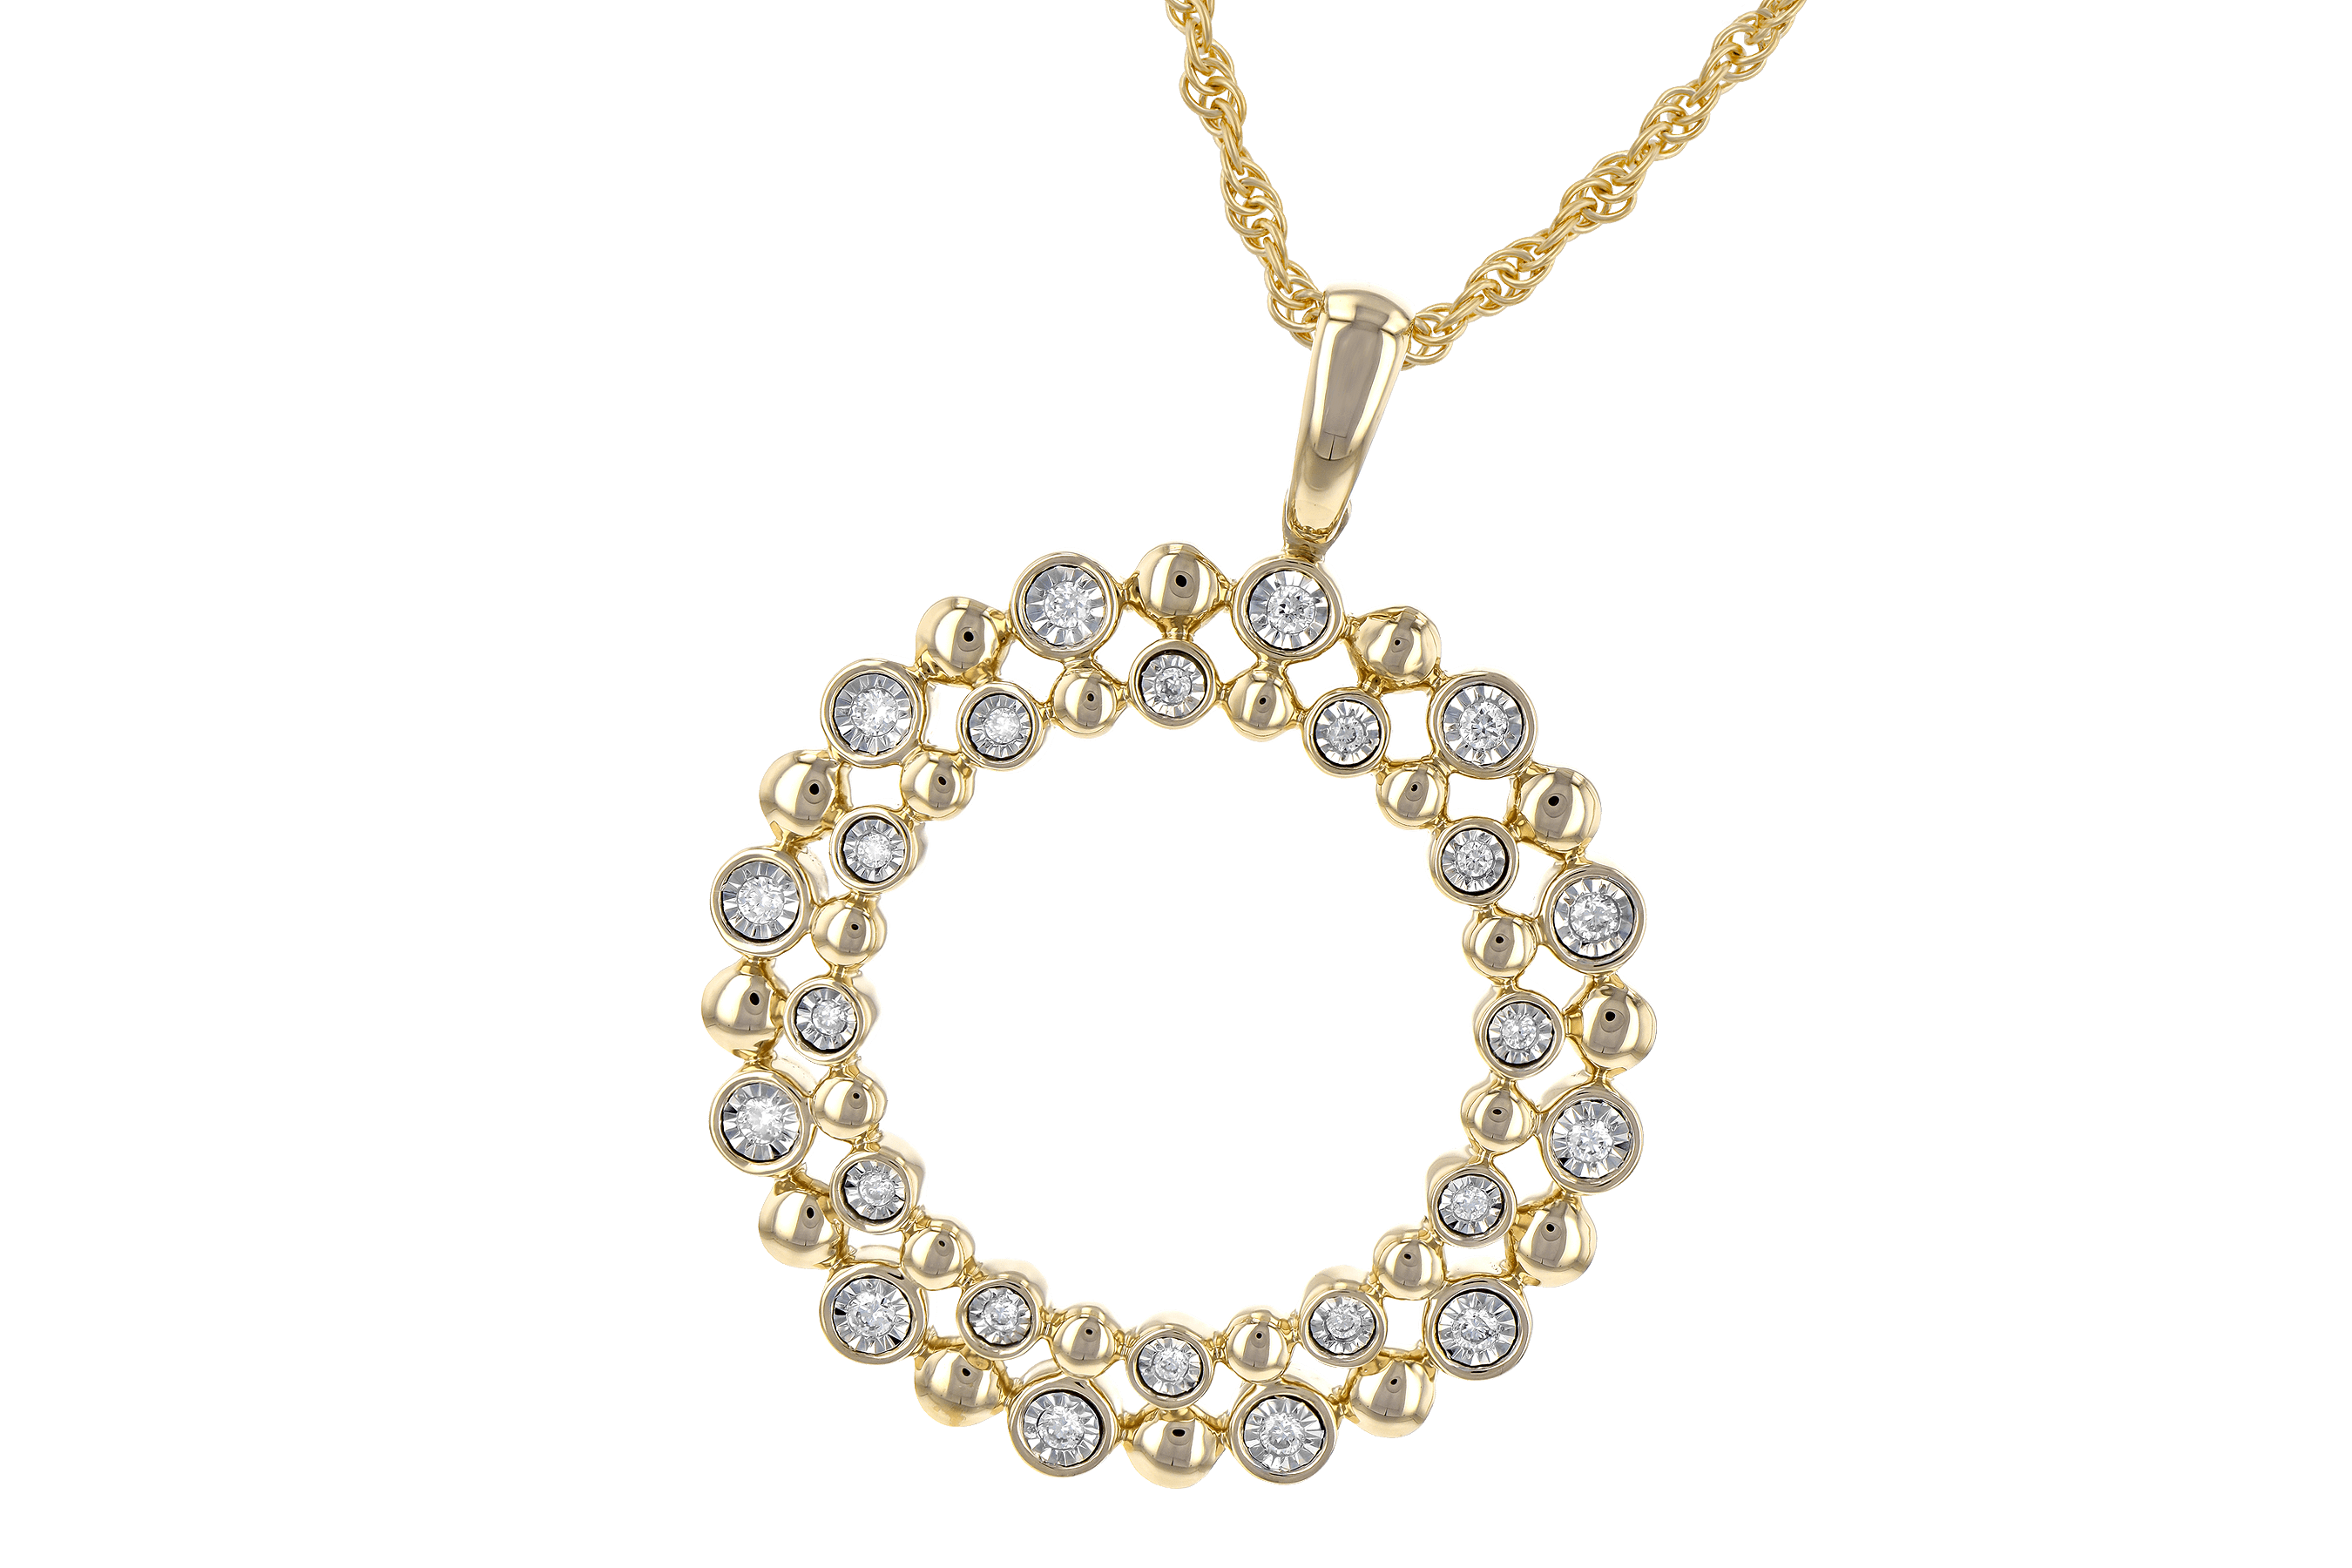 G190-14285: NECKLACE .12 TW